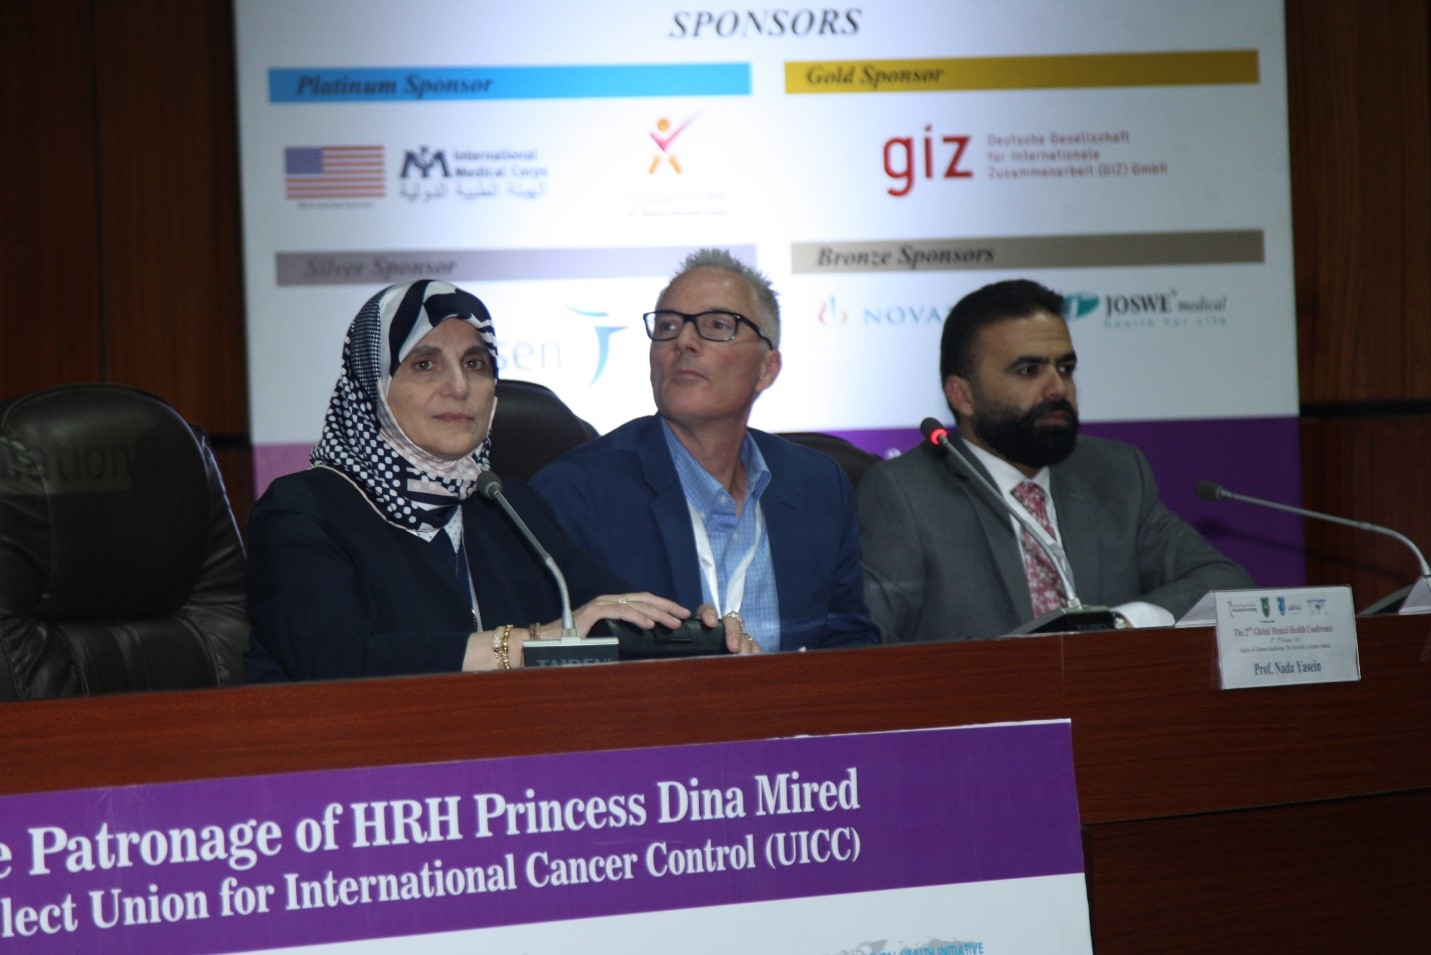 Dr. Nada Yasin from Jordan University, Dr. Edwards from GMH, and Dr. Bawaneh from International Medical Corps as part of a panel at the 2017 conference